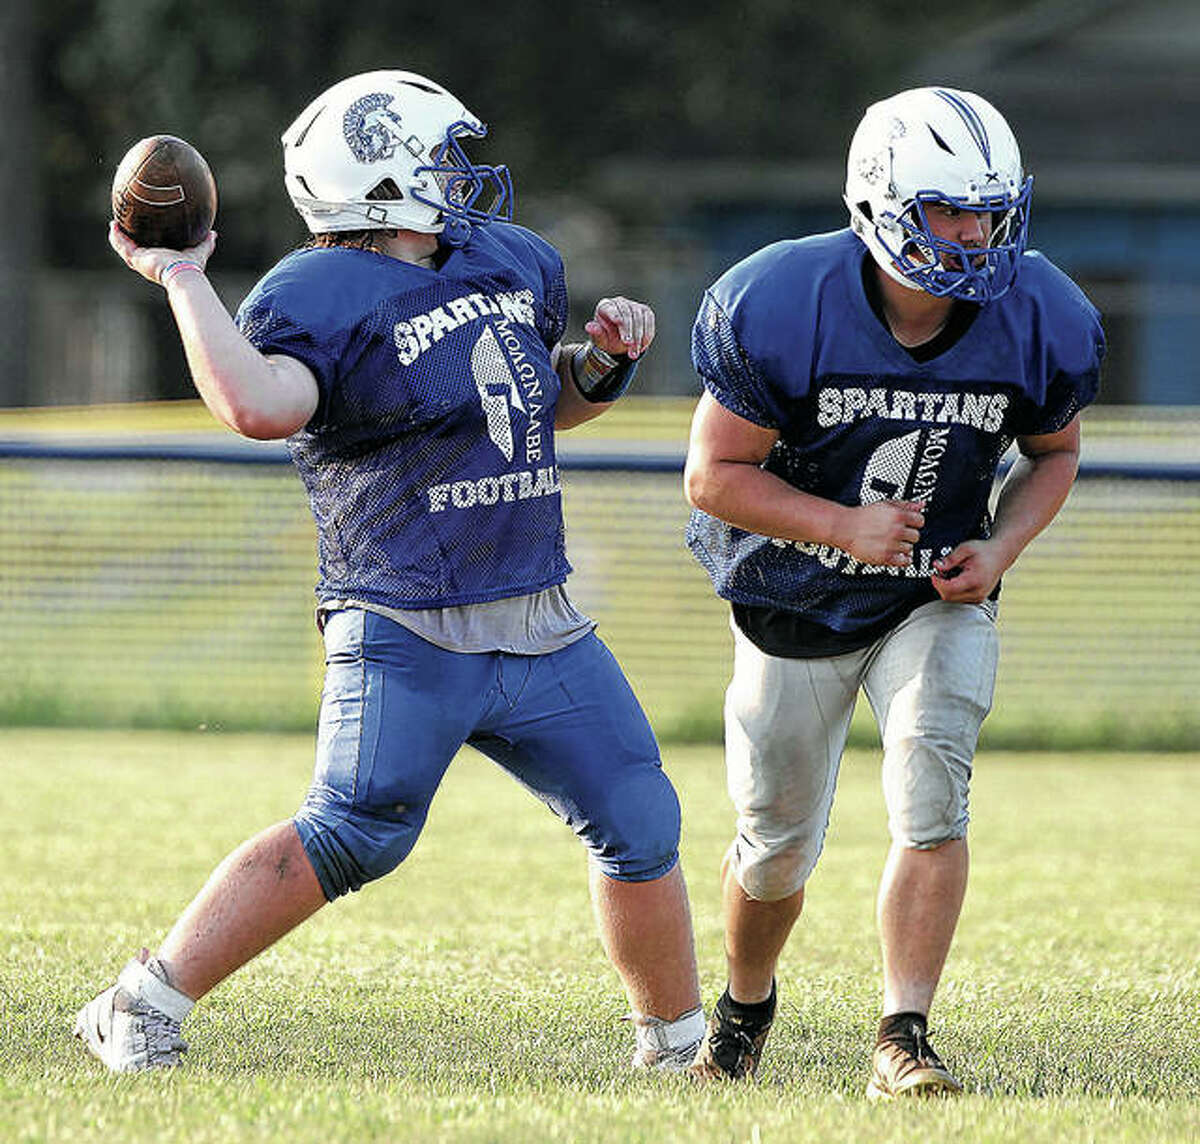 North Greene football players run a play during preseason practice session. The Spartans will open their season at home on Friday, Aug. 27 at 7 p.m. against Mendon Unity/Seymour.